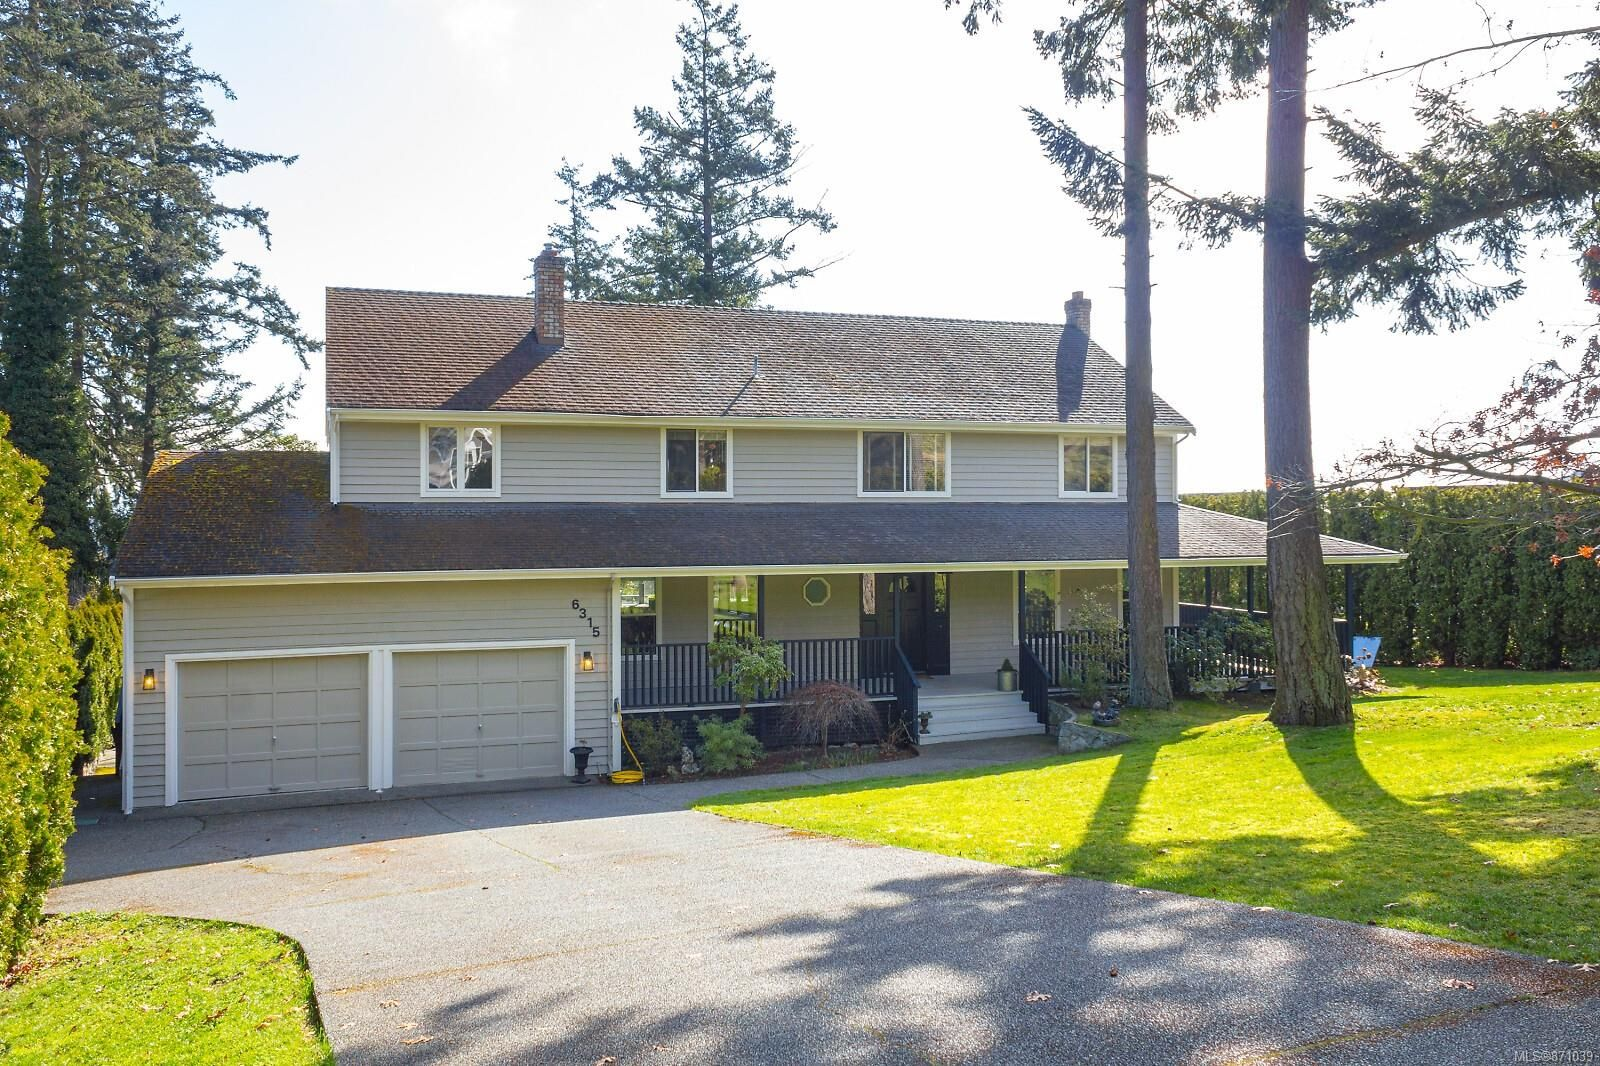 Main Photo: 6315 Clear View Rd in : CS Martindale House for sale (Central Saanich)  : MLS®# 871039